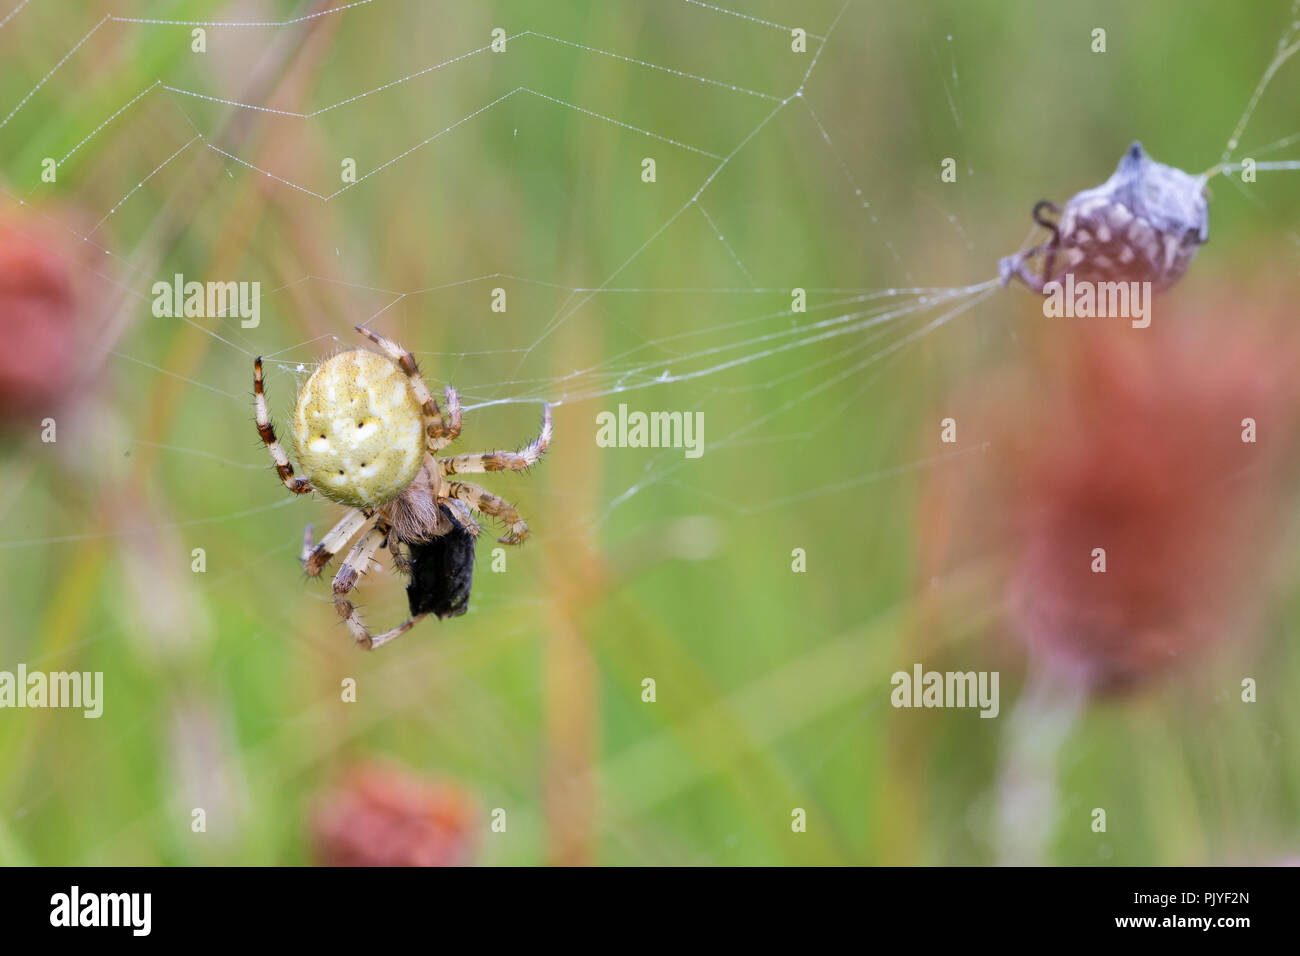 Four-spot Orb Web Spider, Araneus quadratus, with prey.  Whitelye Common, Monmouthshire, Wales. Family Araneidae. - Stock Image